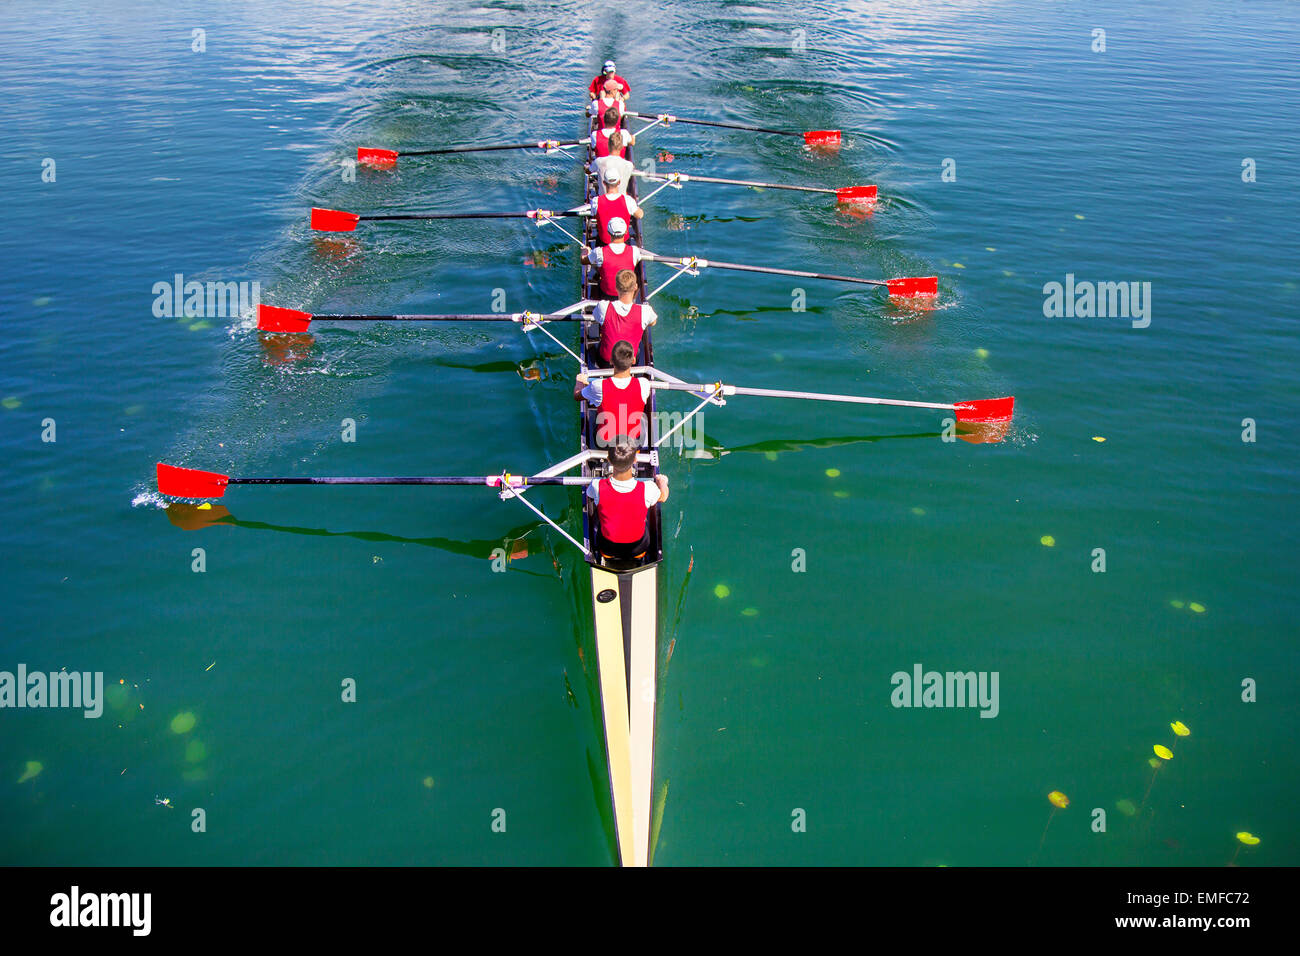 Boat coxed eight Rowers rowing on the blue lake - Stock Image